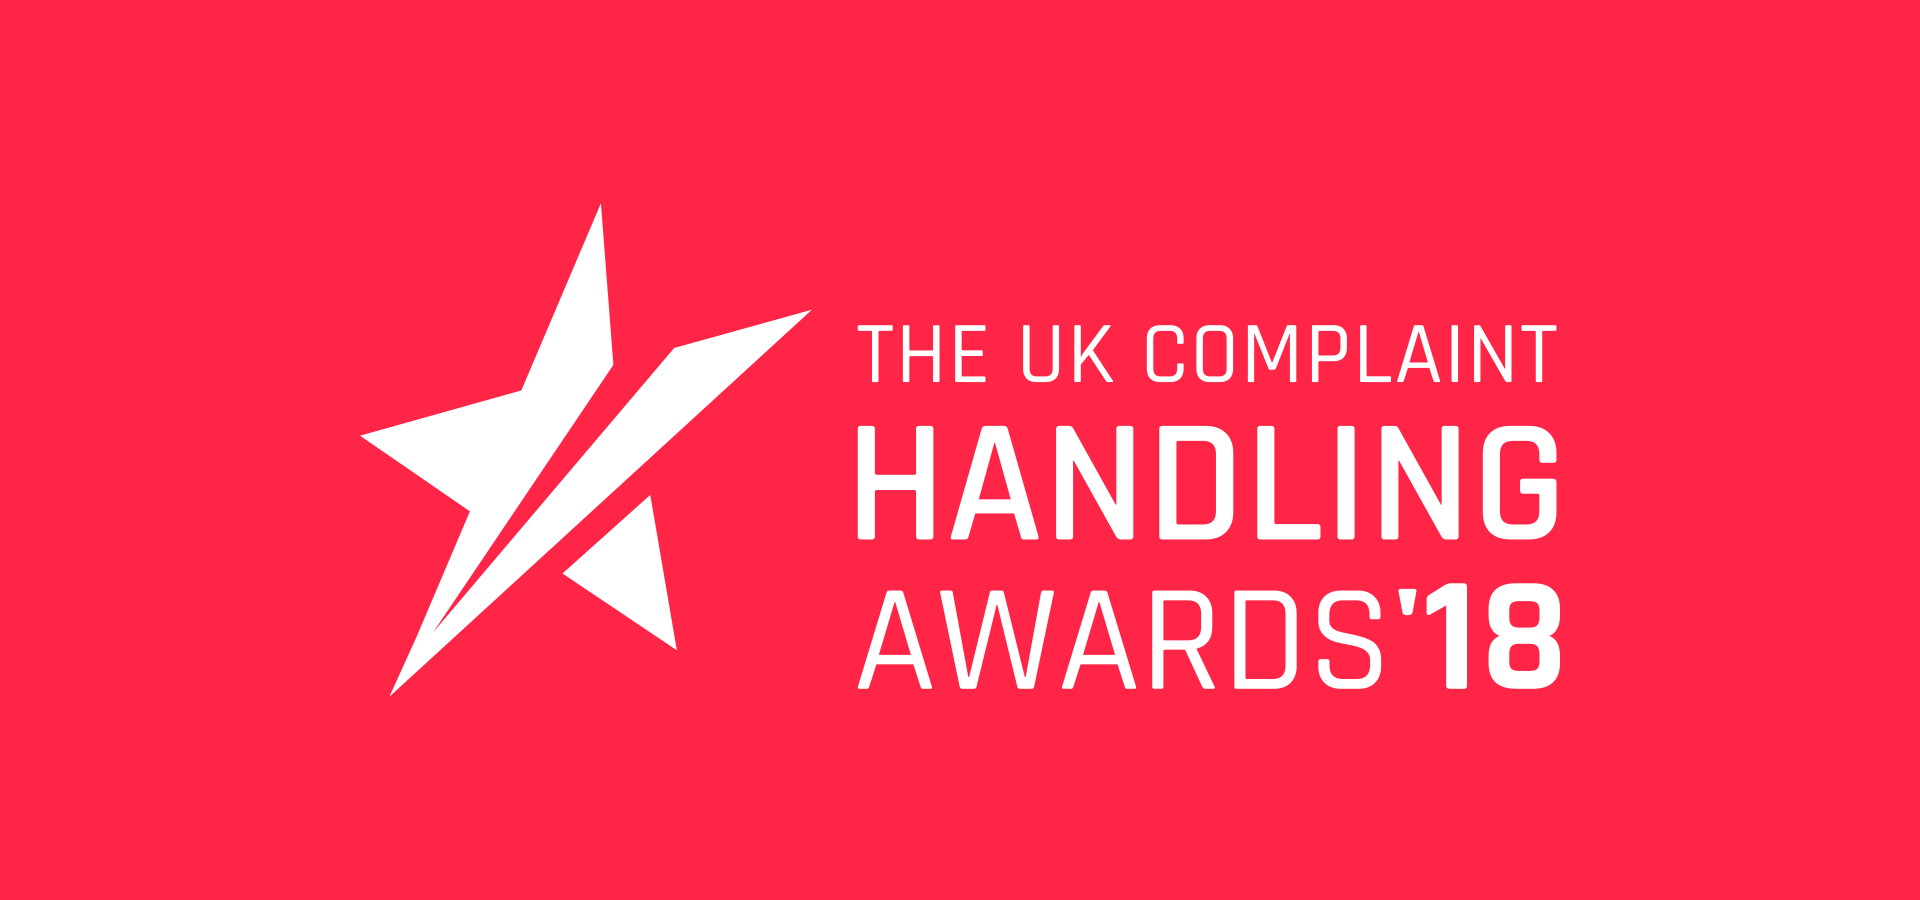 The UK Complaint Handling Awards 2018